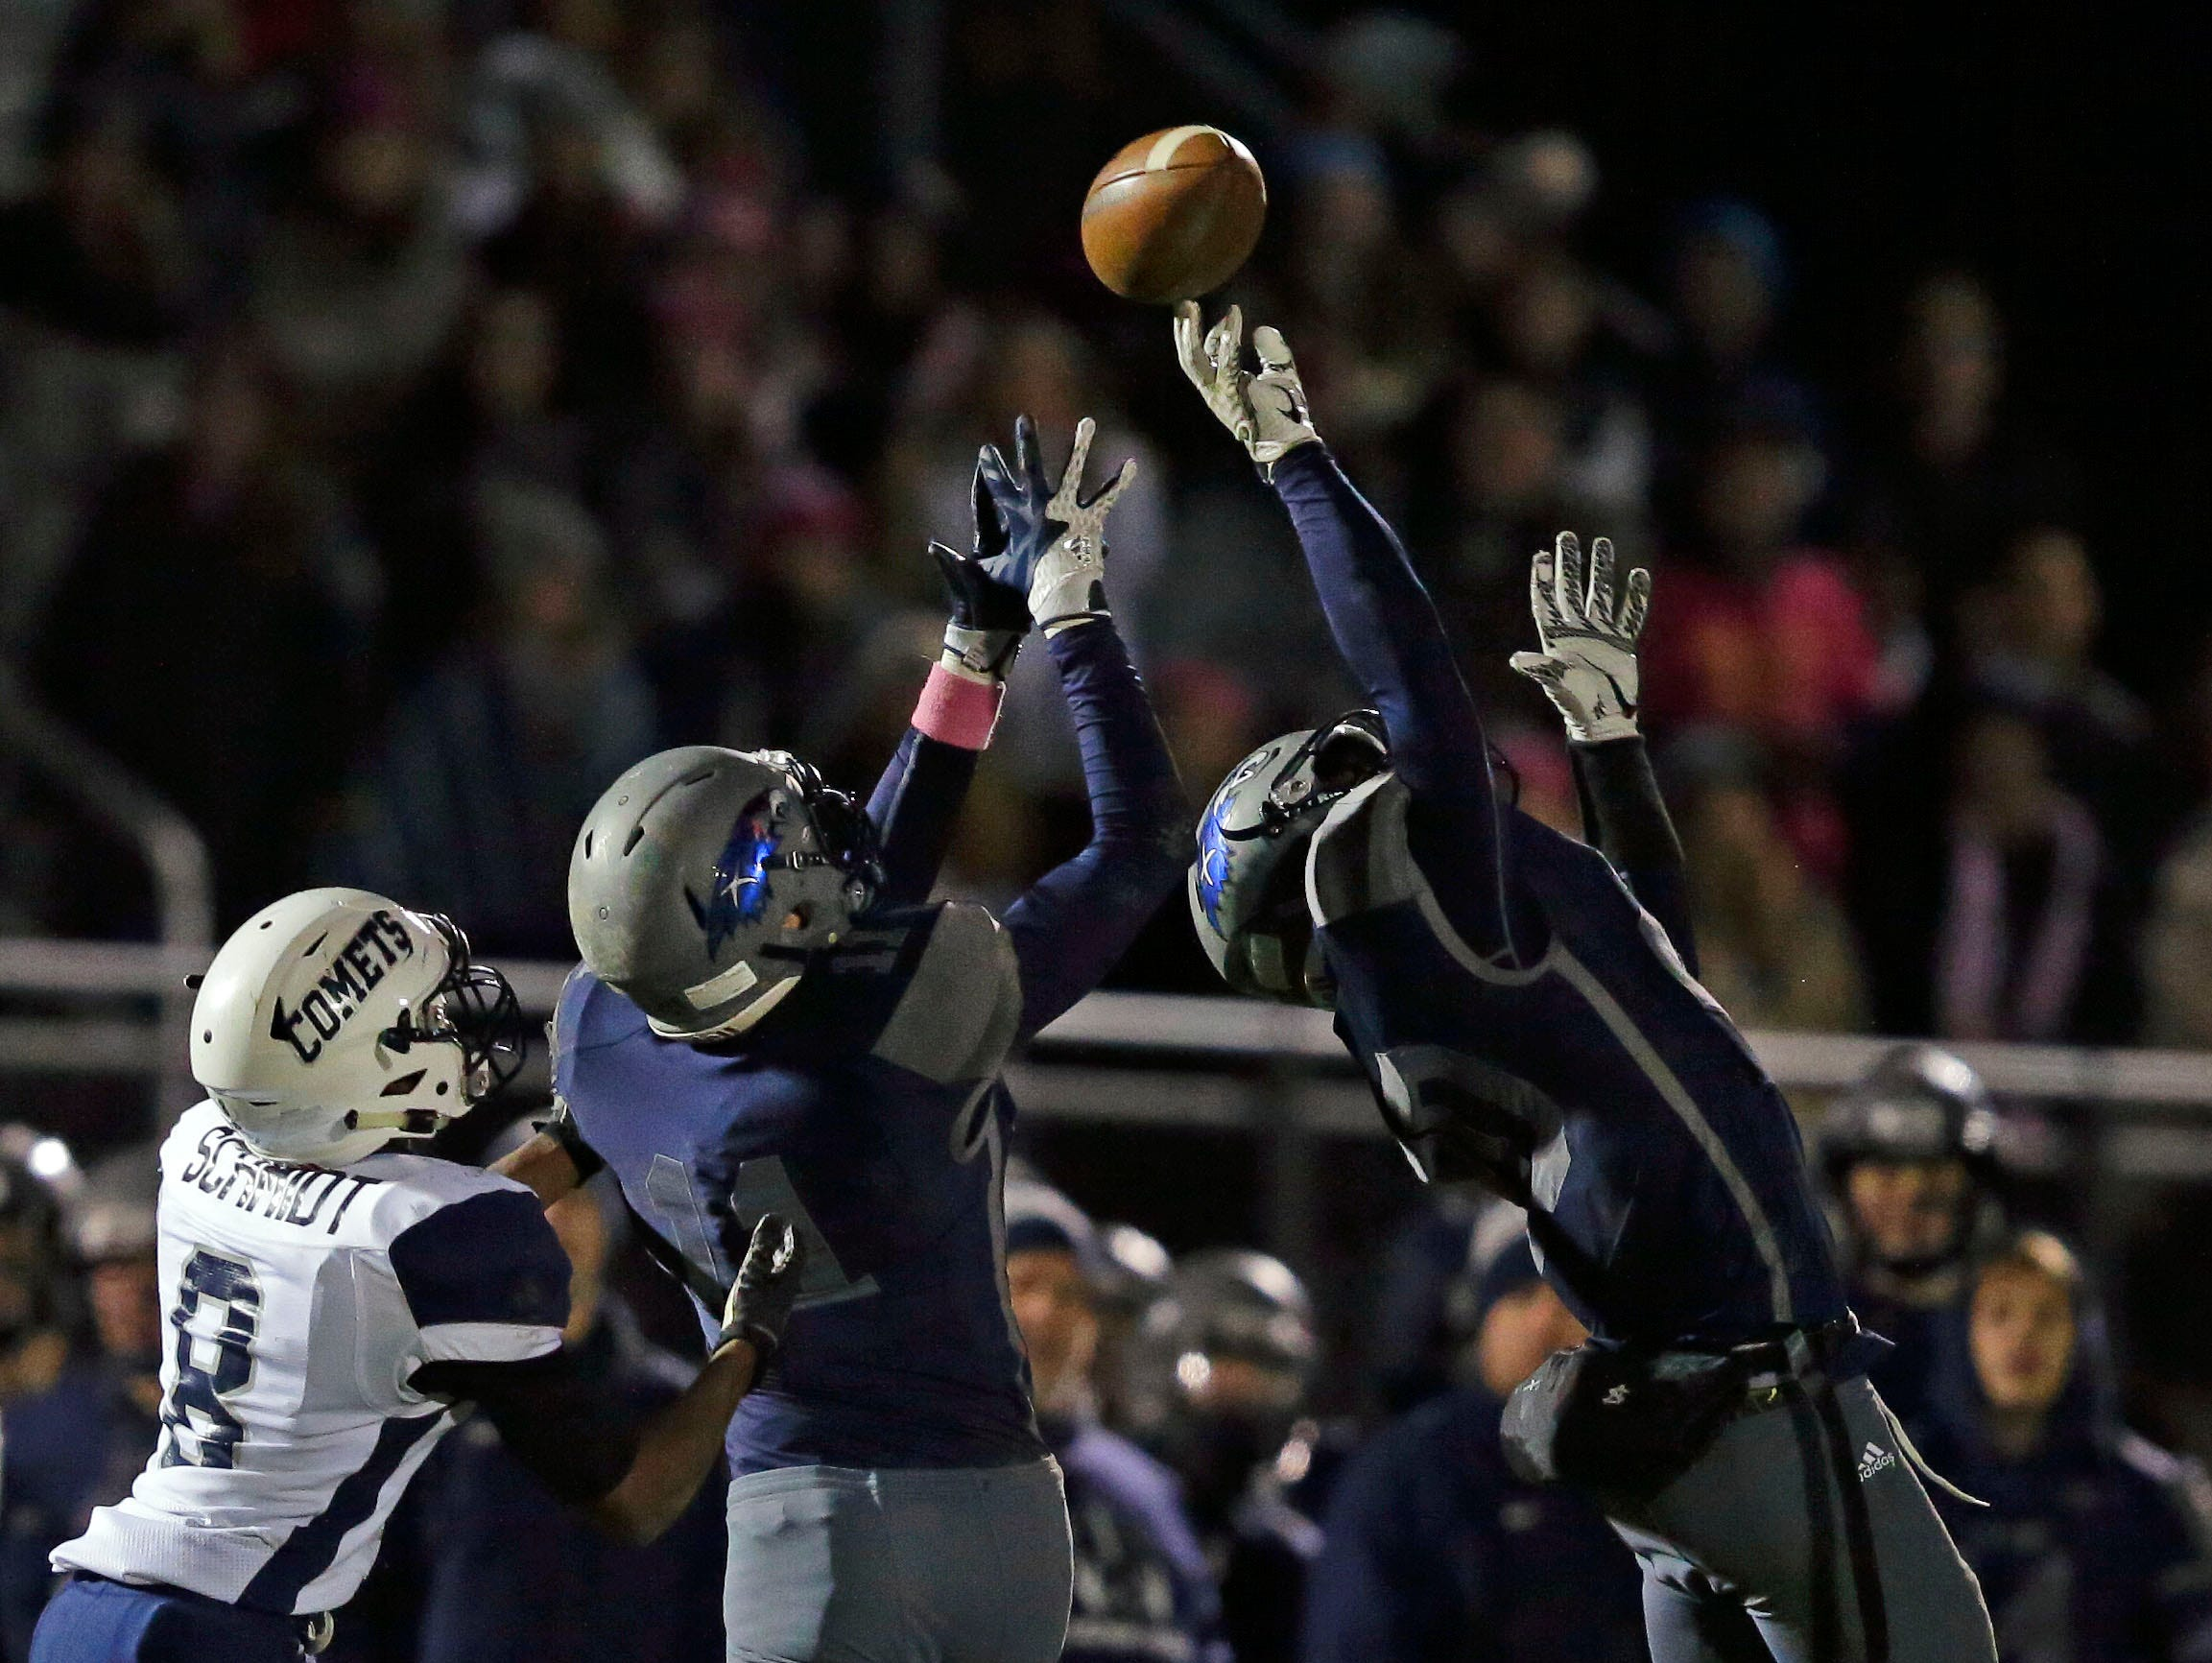 Tj Van Eperen and Alex Hahlbeck of Xavier almost intercept a pass for Terry Schmidt of Waupaca in a Bay Conference football game Friday, October 12, 2018, at Rocky Bleier Field in Appleton, Wis.